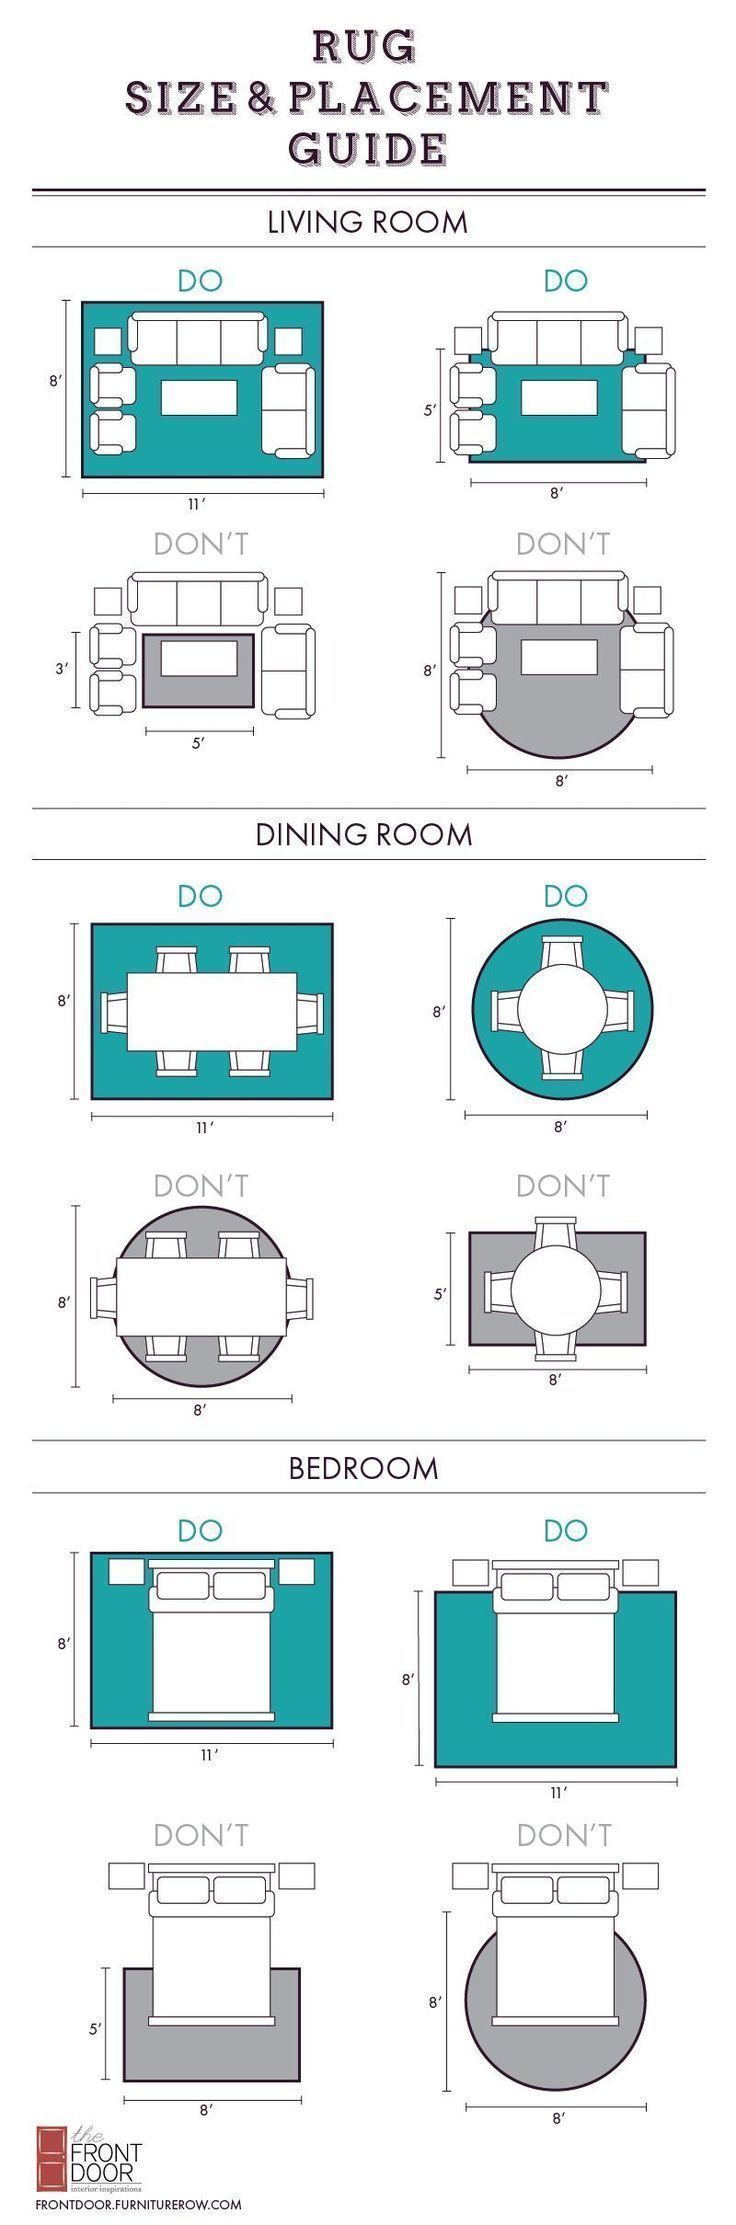 Terrific Totally Free Round Rugs Layout Strategies Perhaps You Have Wanted To In Terrific Total In 2020 Rugs Layout Bedroom Area Rug Placement Living Room Rug Layout